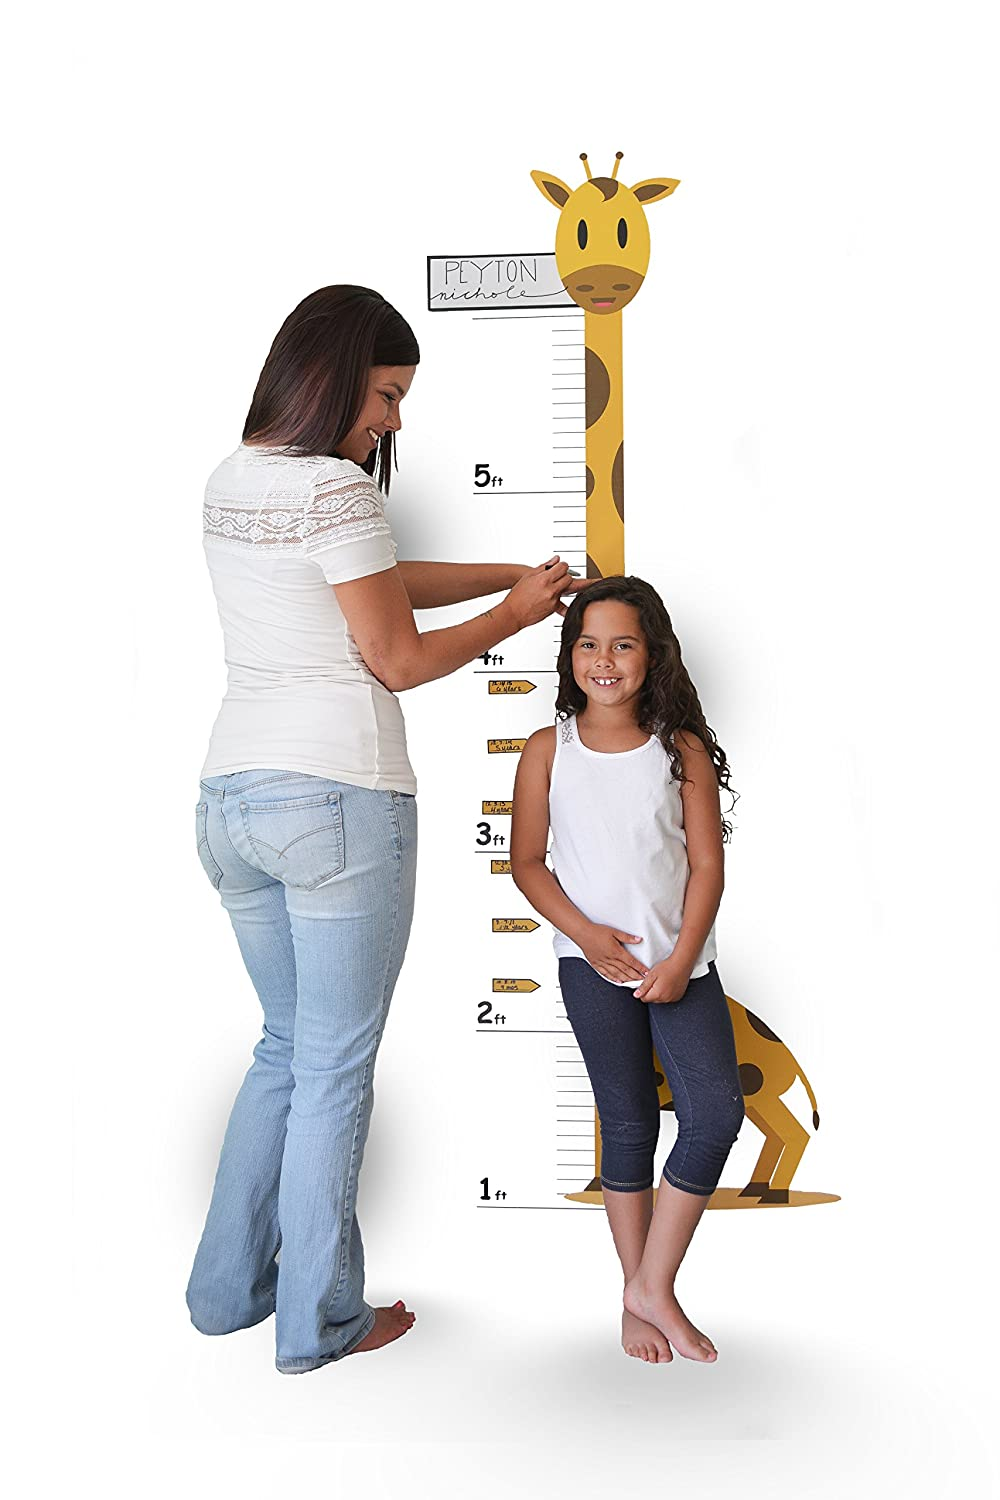 Amazon growth chart wall decal growth chart giraffe low tac amazon growth chart wall decal growth chart giraffe low tac removable adhesive home kitchen geenschuldenfo Image collections